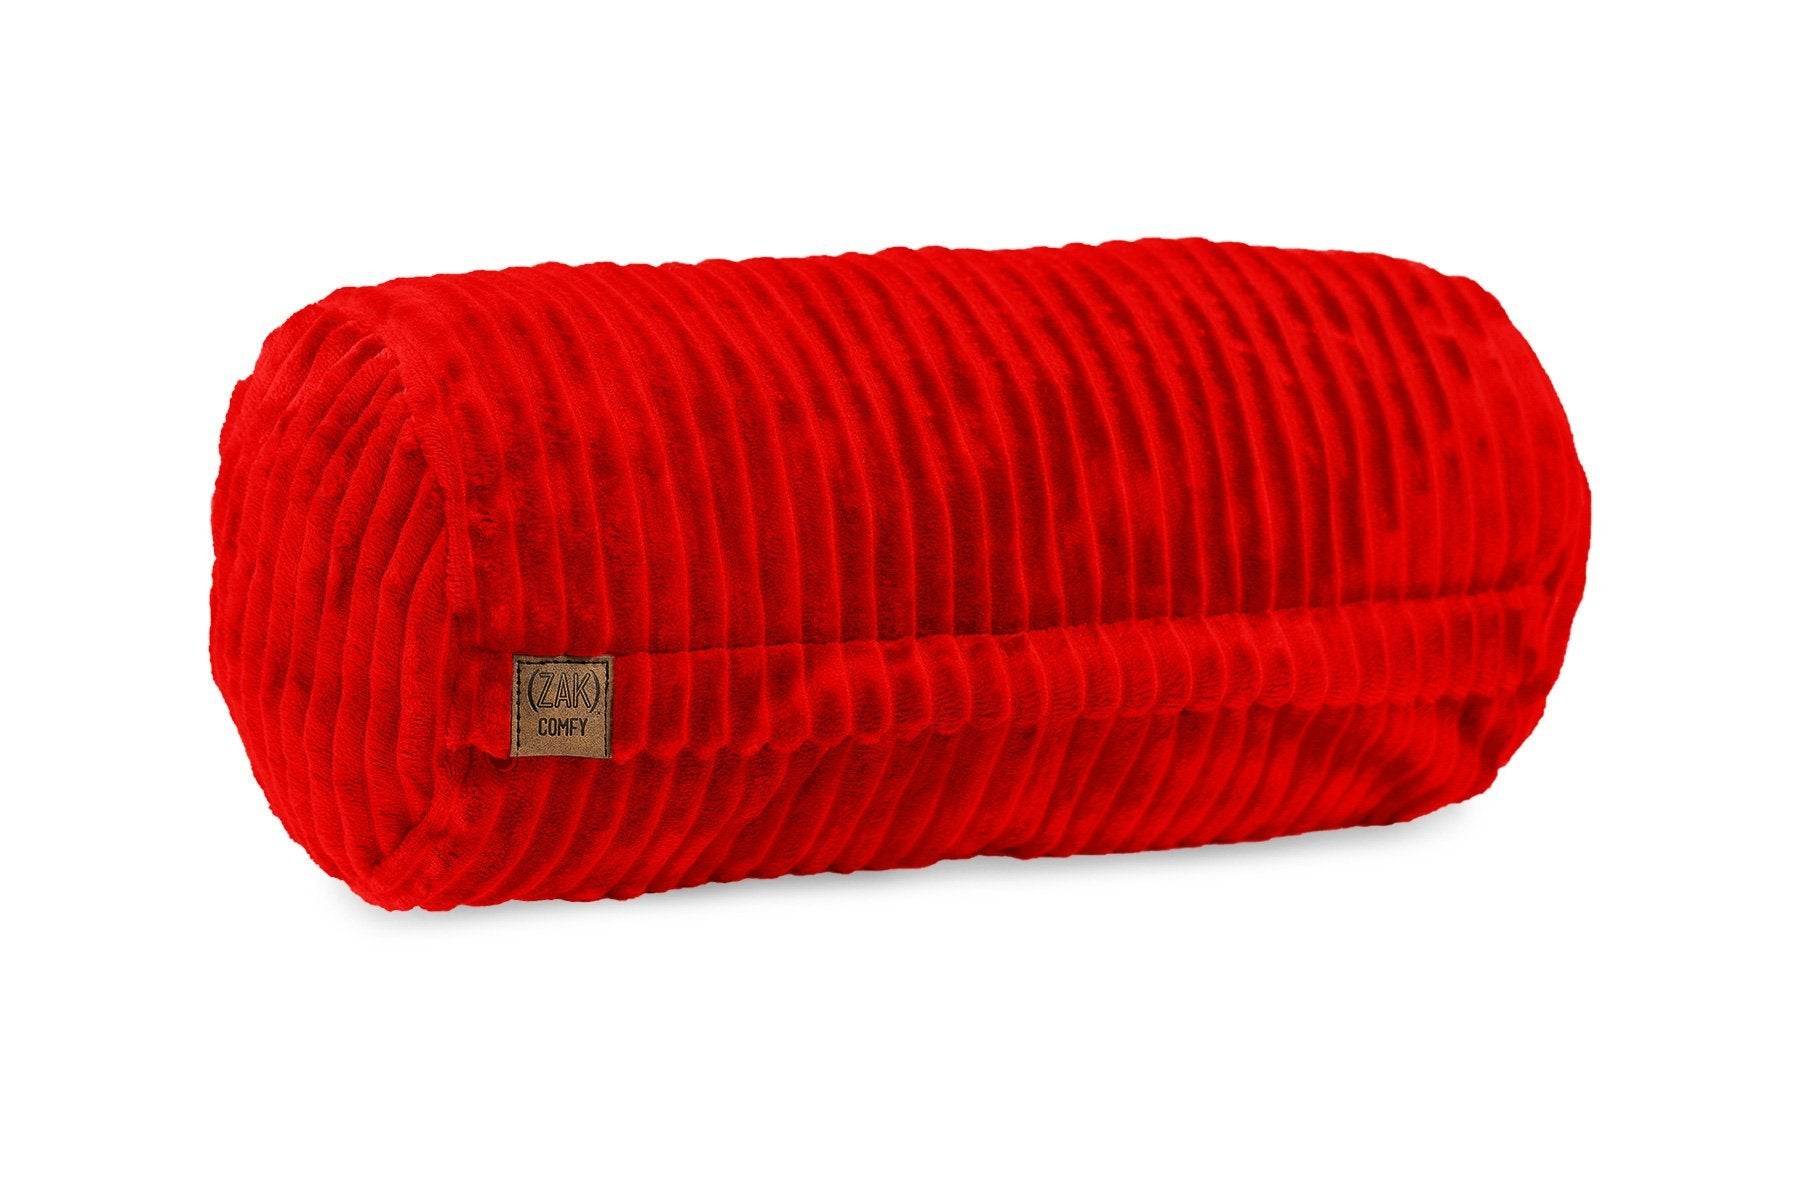 Comfyzak pillows - neck-roll-corduroy-flame-red